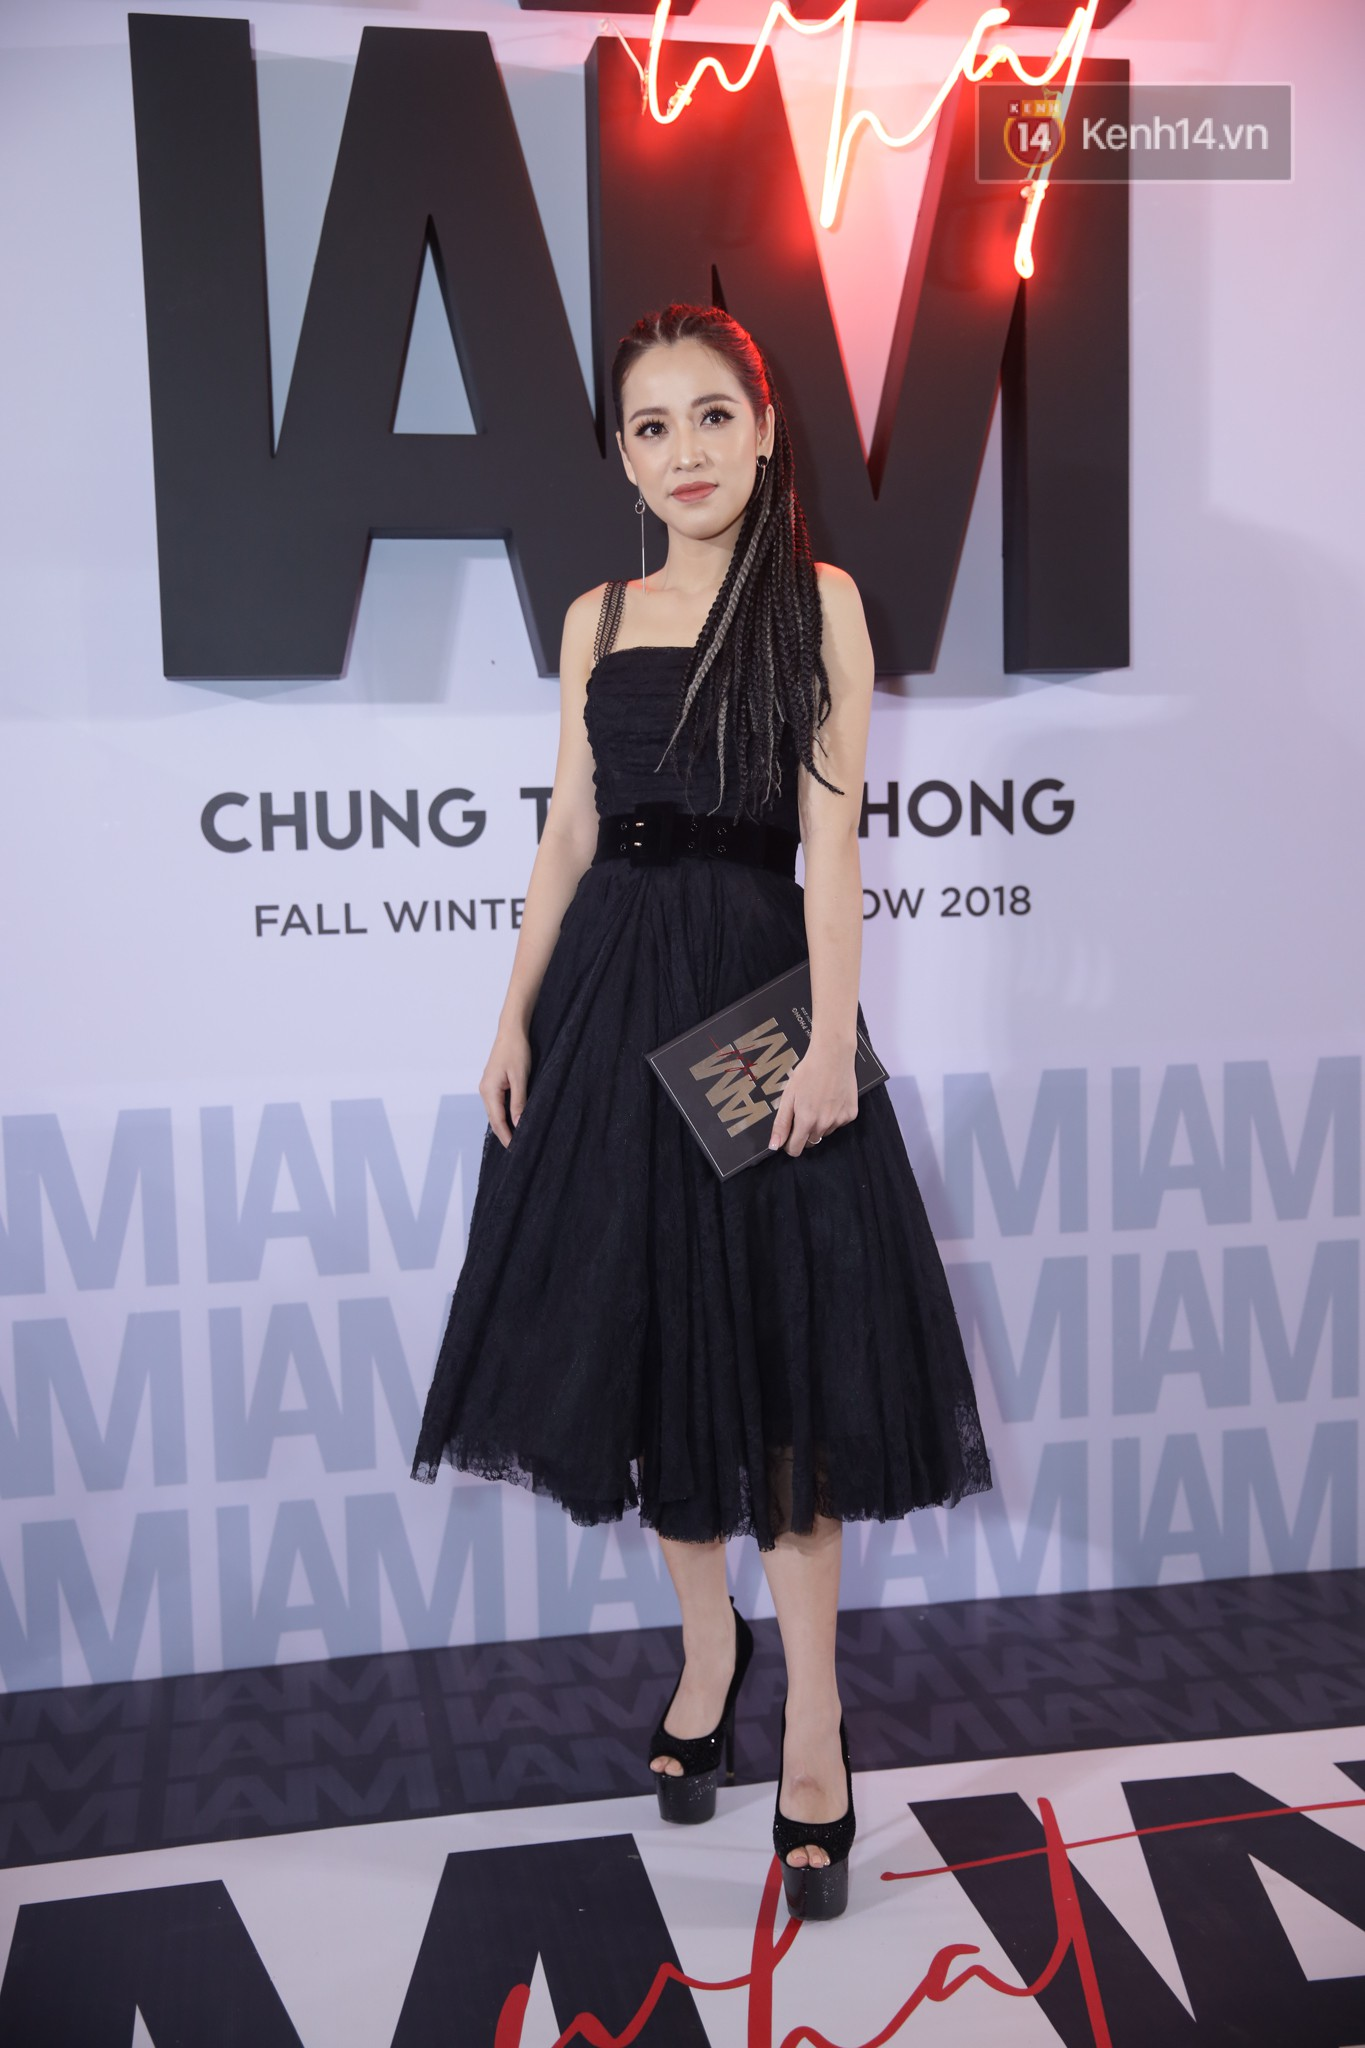 The red carpet Chung Thanh Phong show: it was able to test strange styles, Quỳnh Anh Shyn caught the spiders with rain - Photo 10.